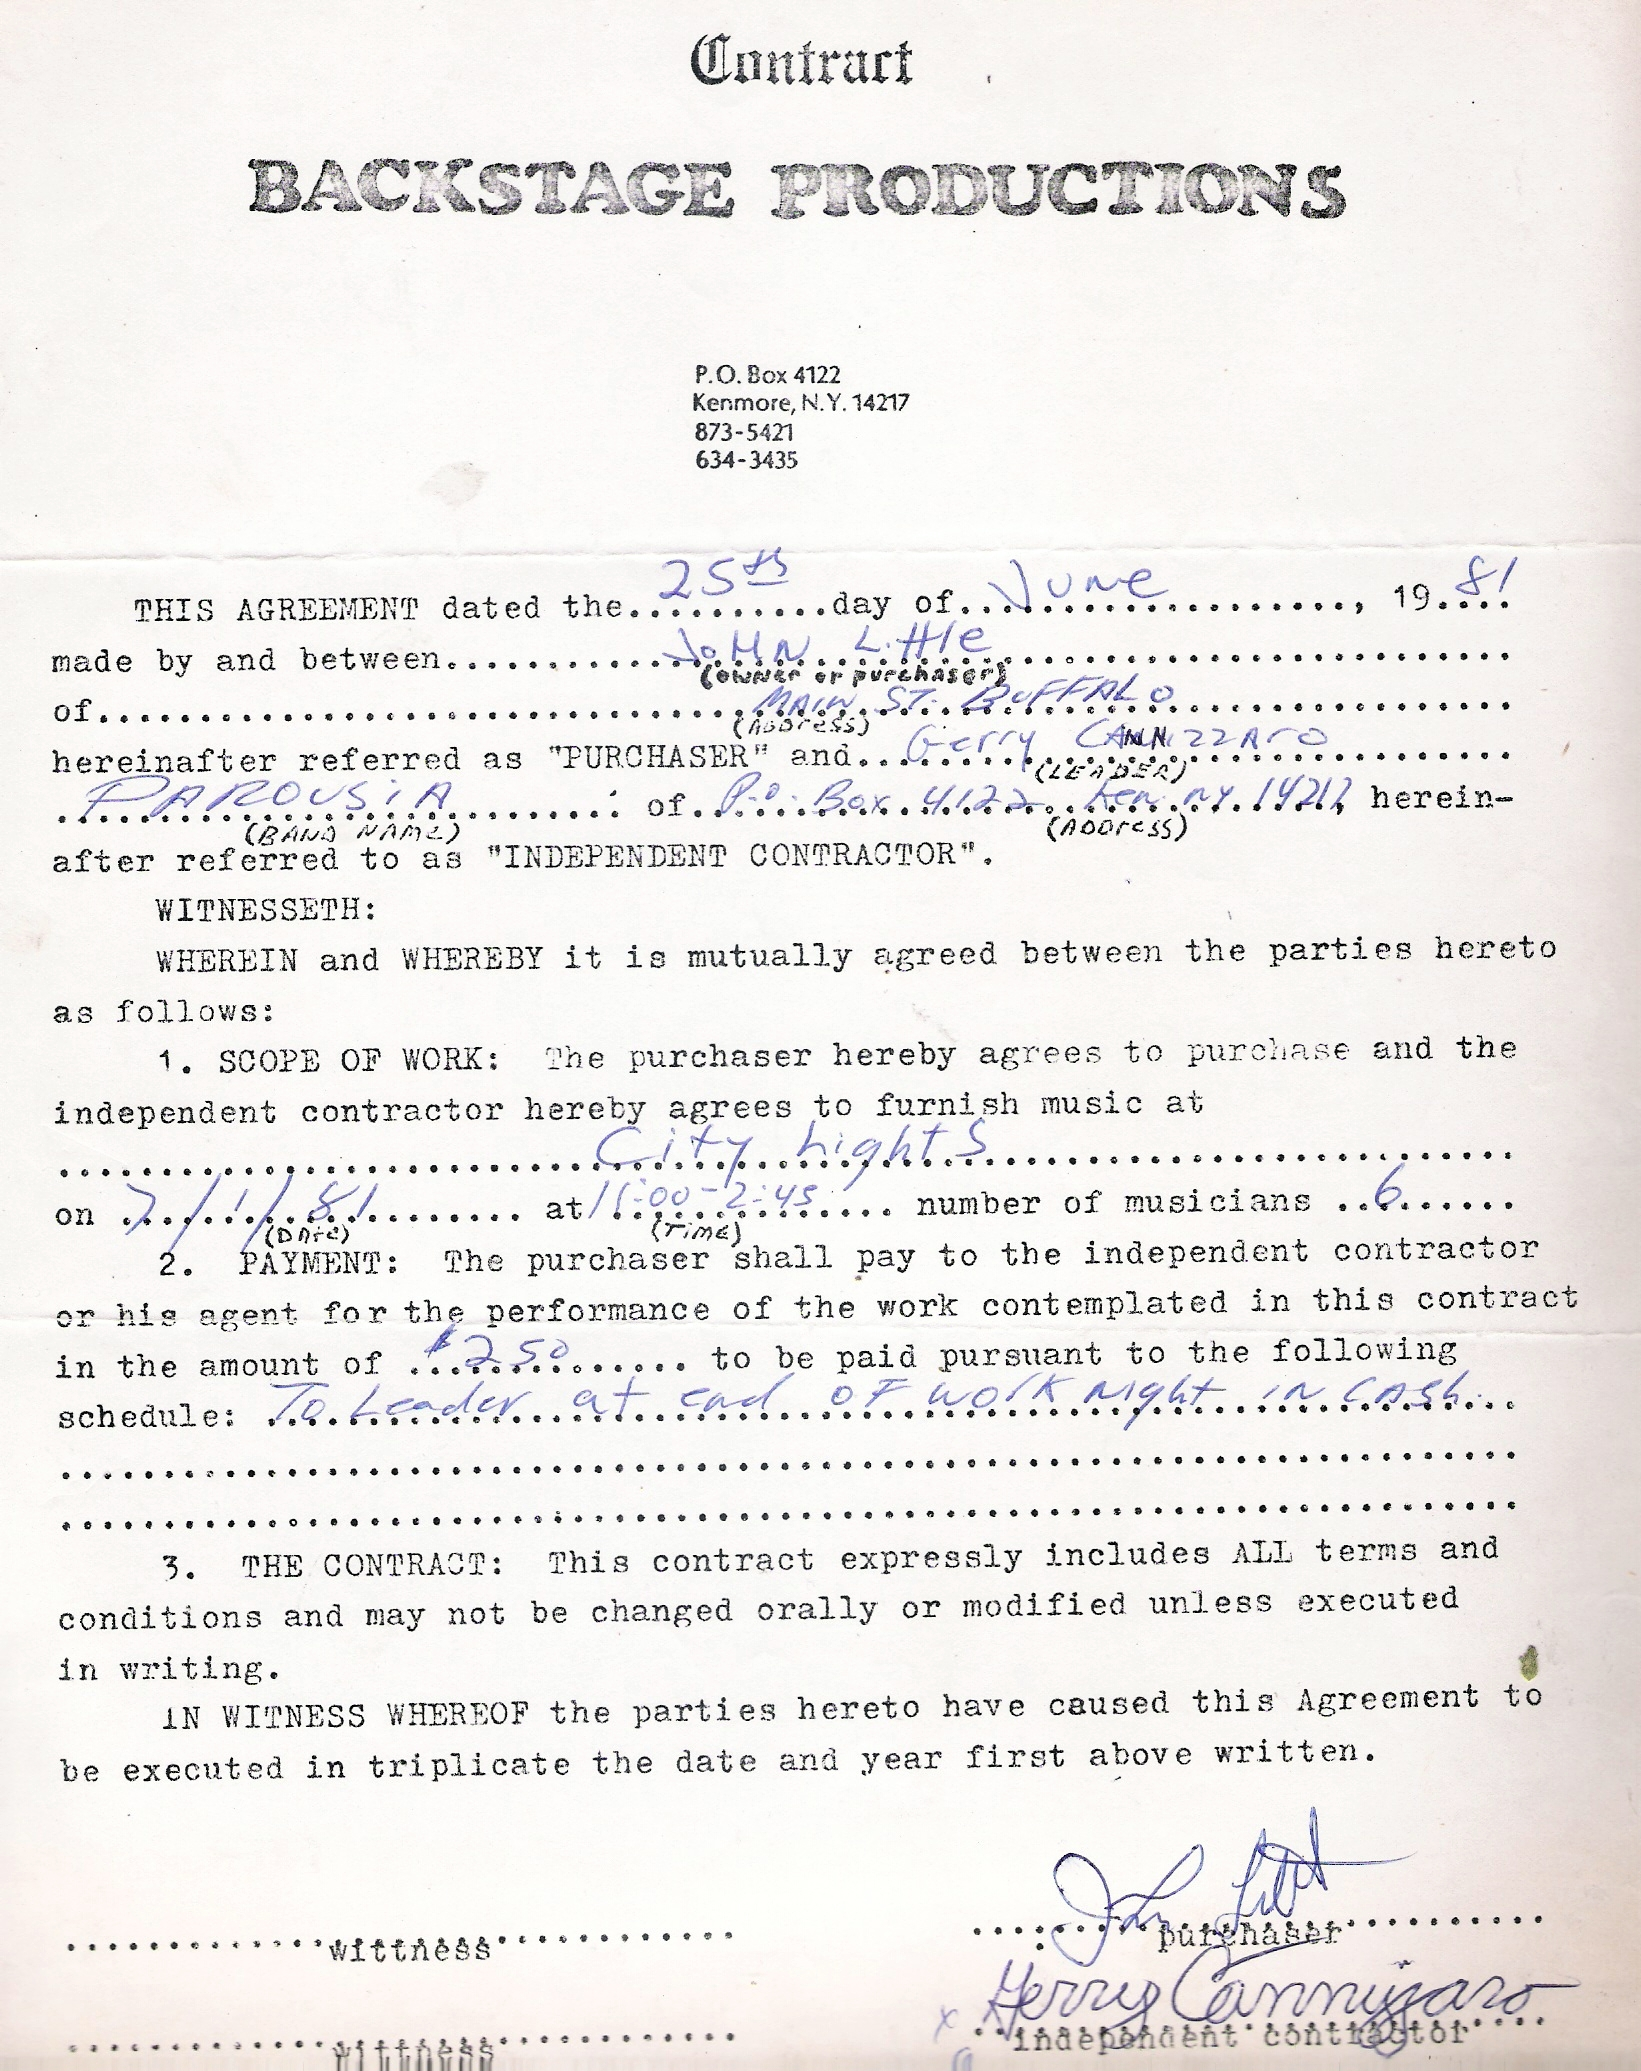 City Lights Signed Contract - 07.01.1981